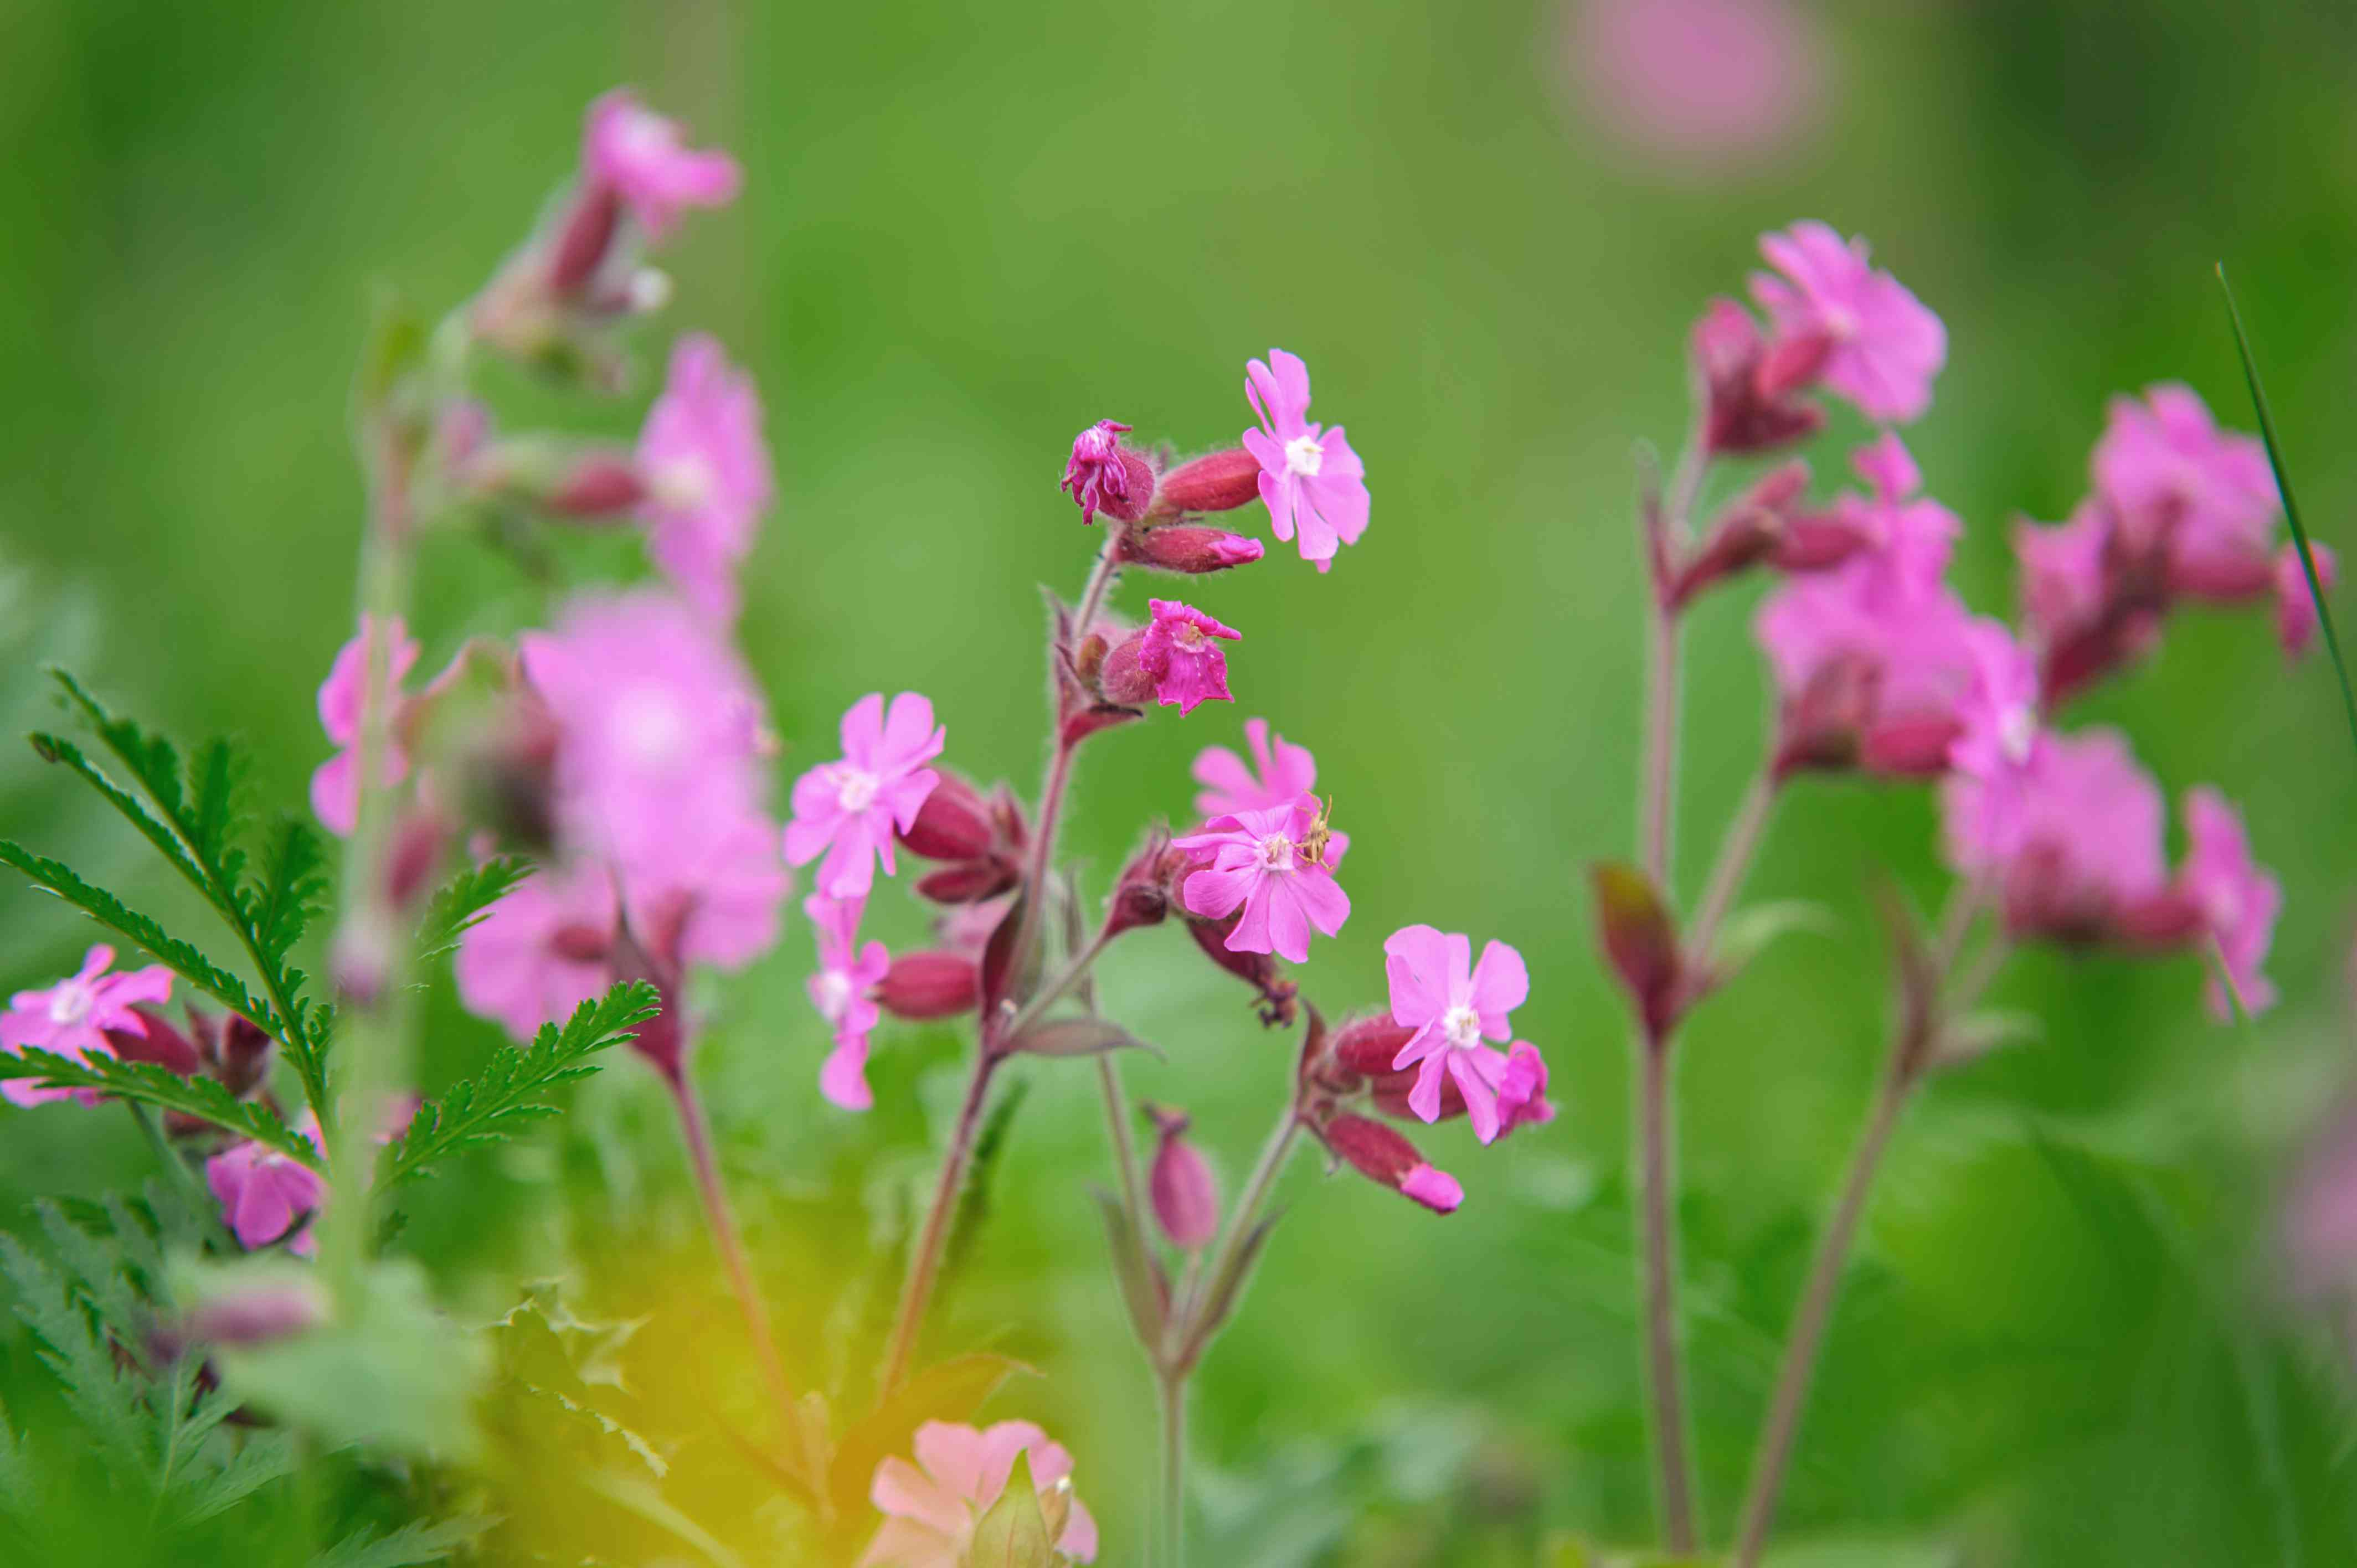 Red campion plant with small pink star-shaped flowers on thin stems closeup